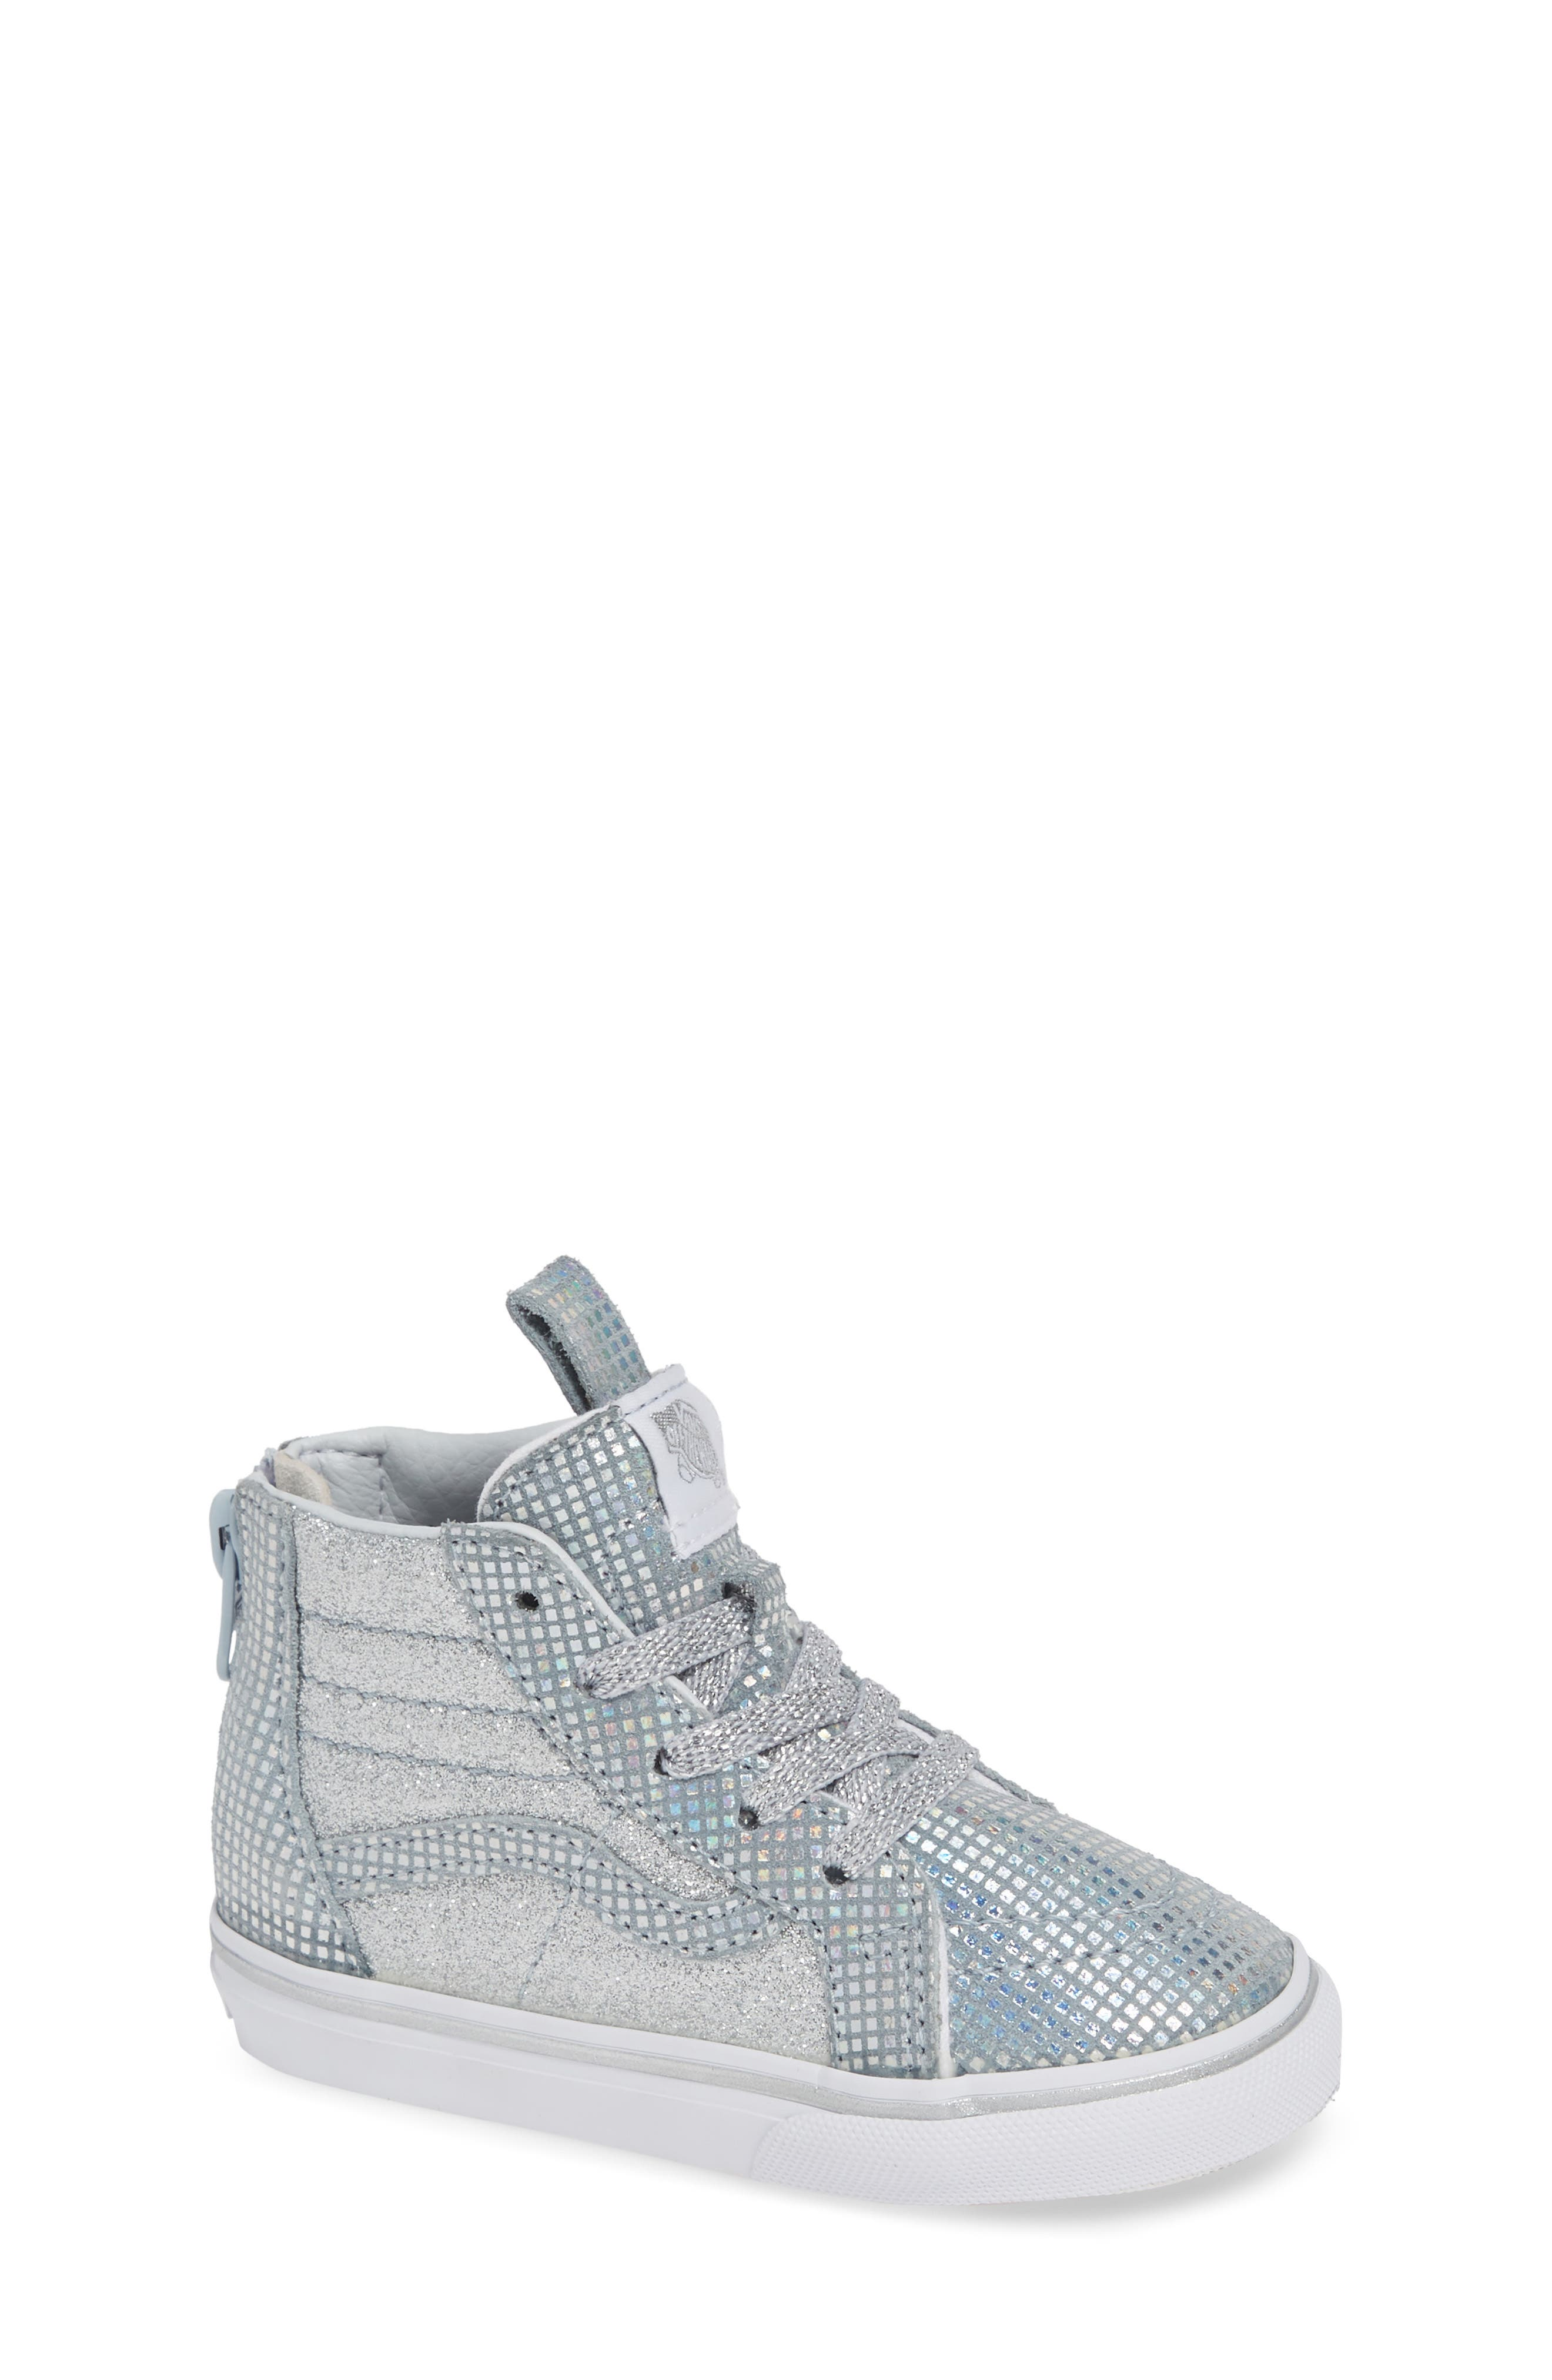 SK8-Hi Zip Sparkle Sneaker,                         Main,                         color, METALLIC SILVER GLITTER